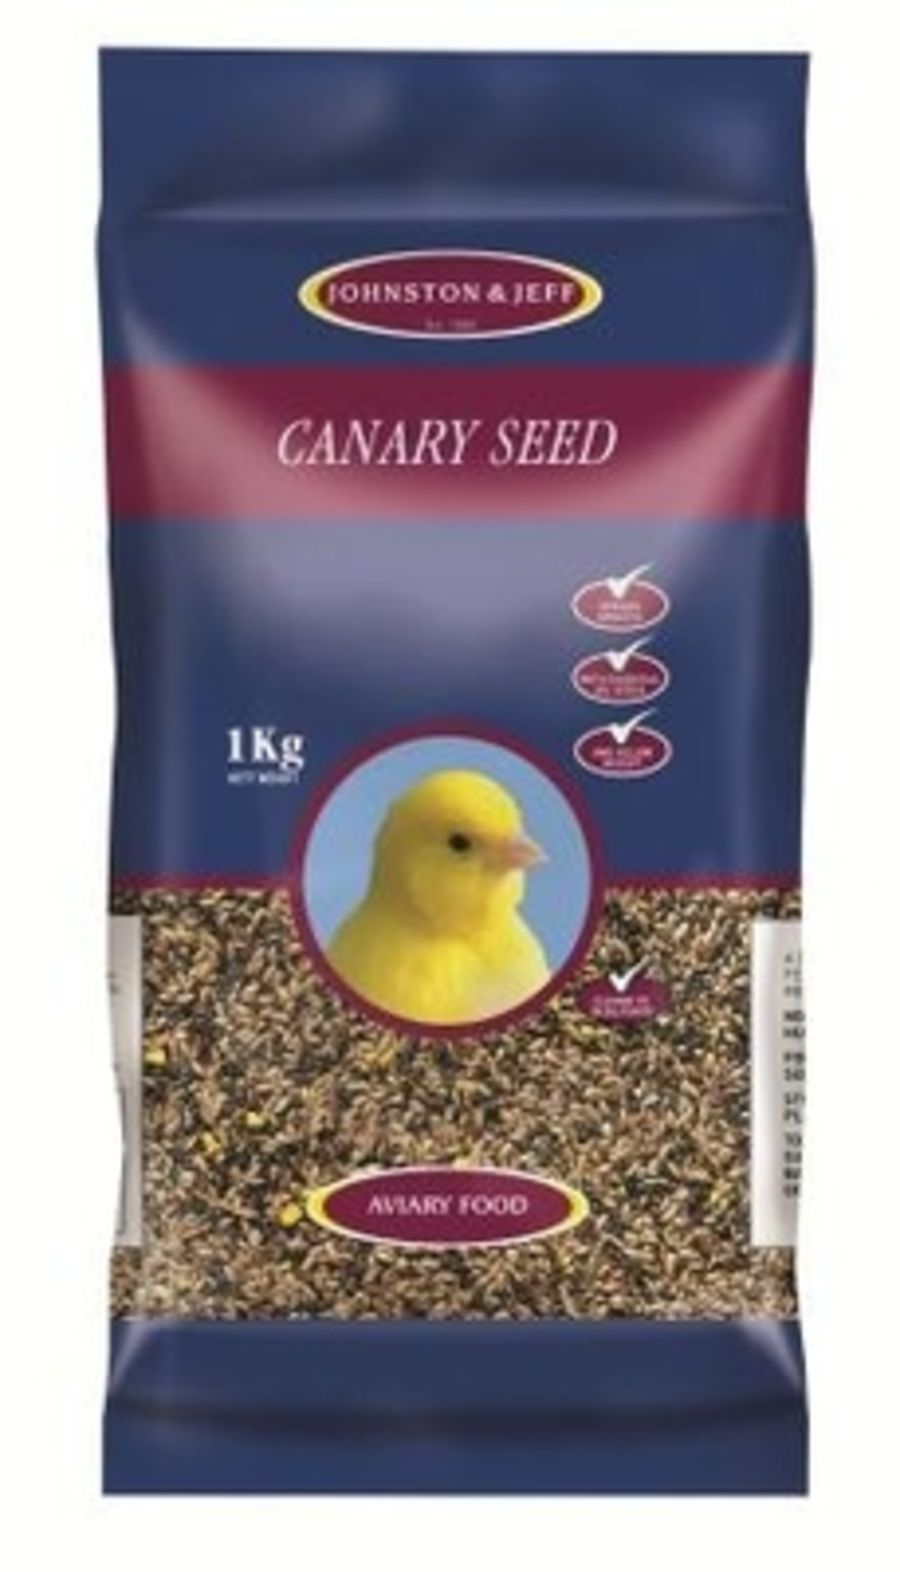 Johnston & Jeff Canary Favourite seed 1kg